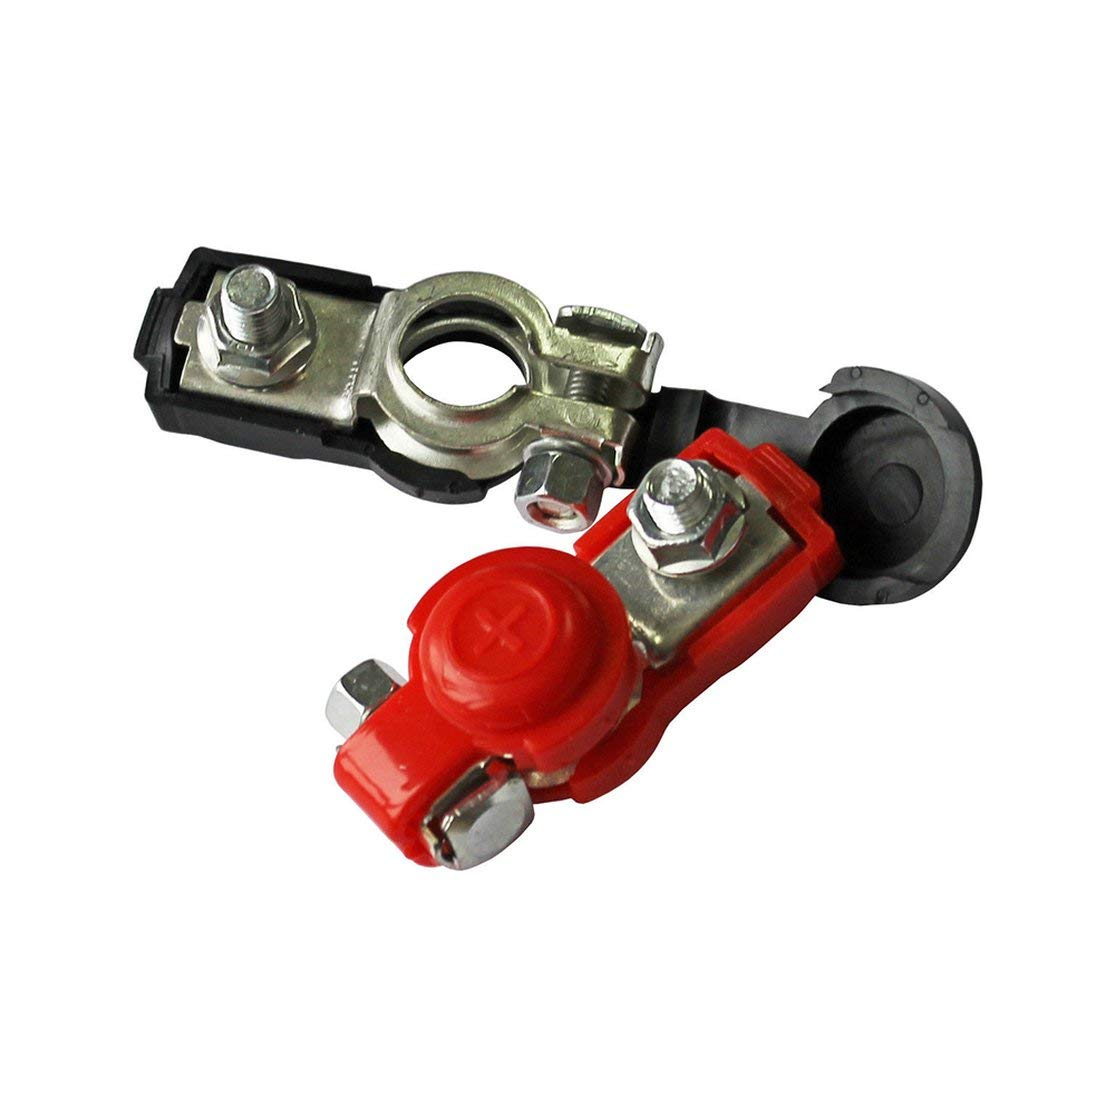 LouiseEvel215 2x battery quick-release clamps 6-12V pole terminals car battery terminals black and red color connector